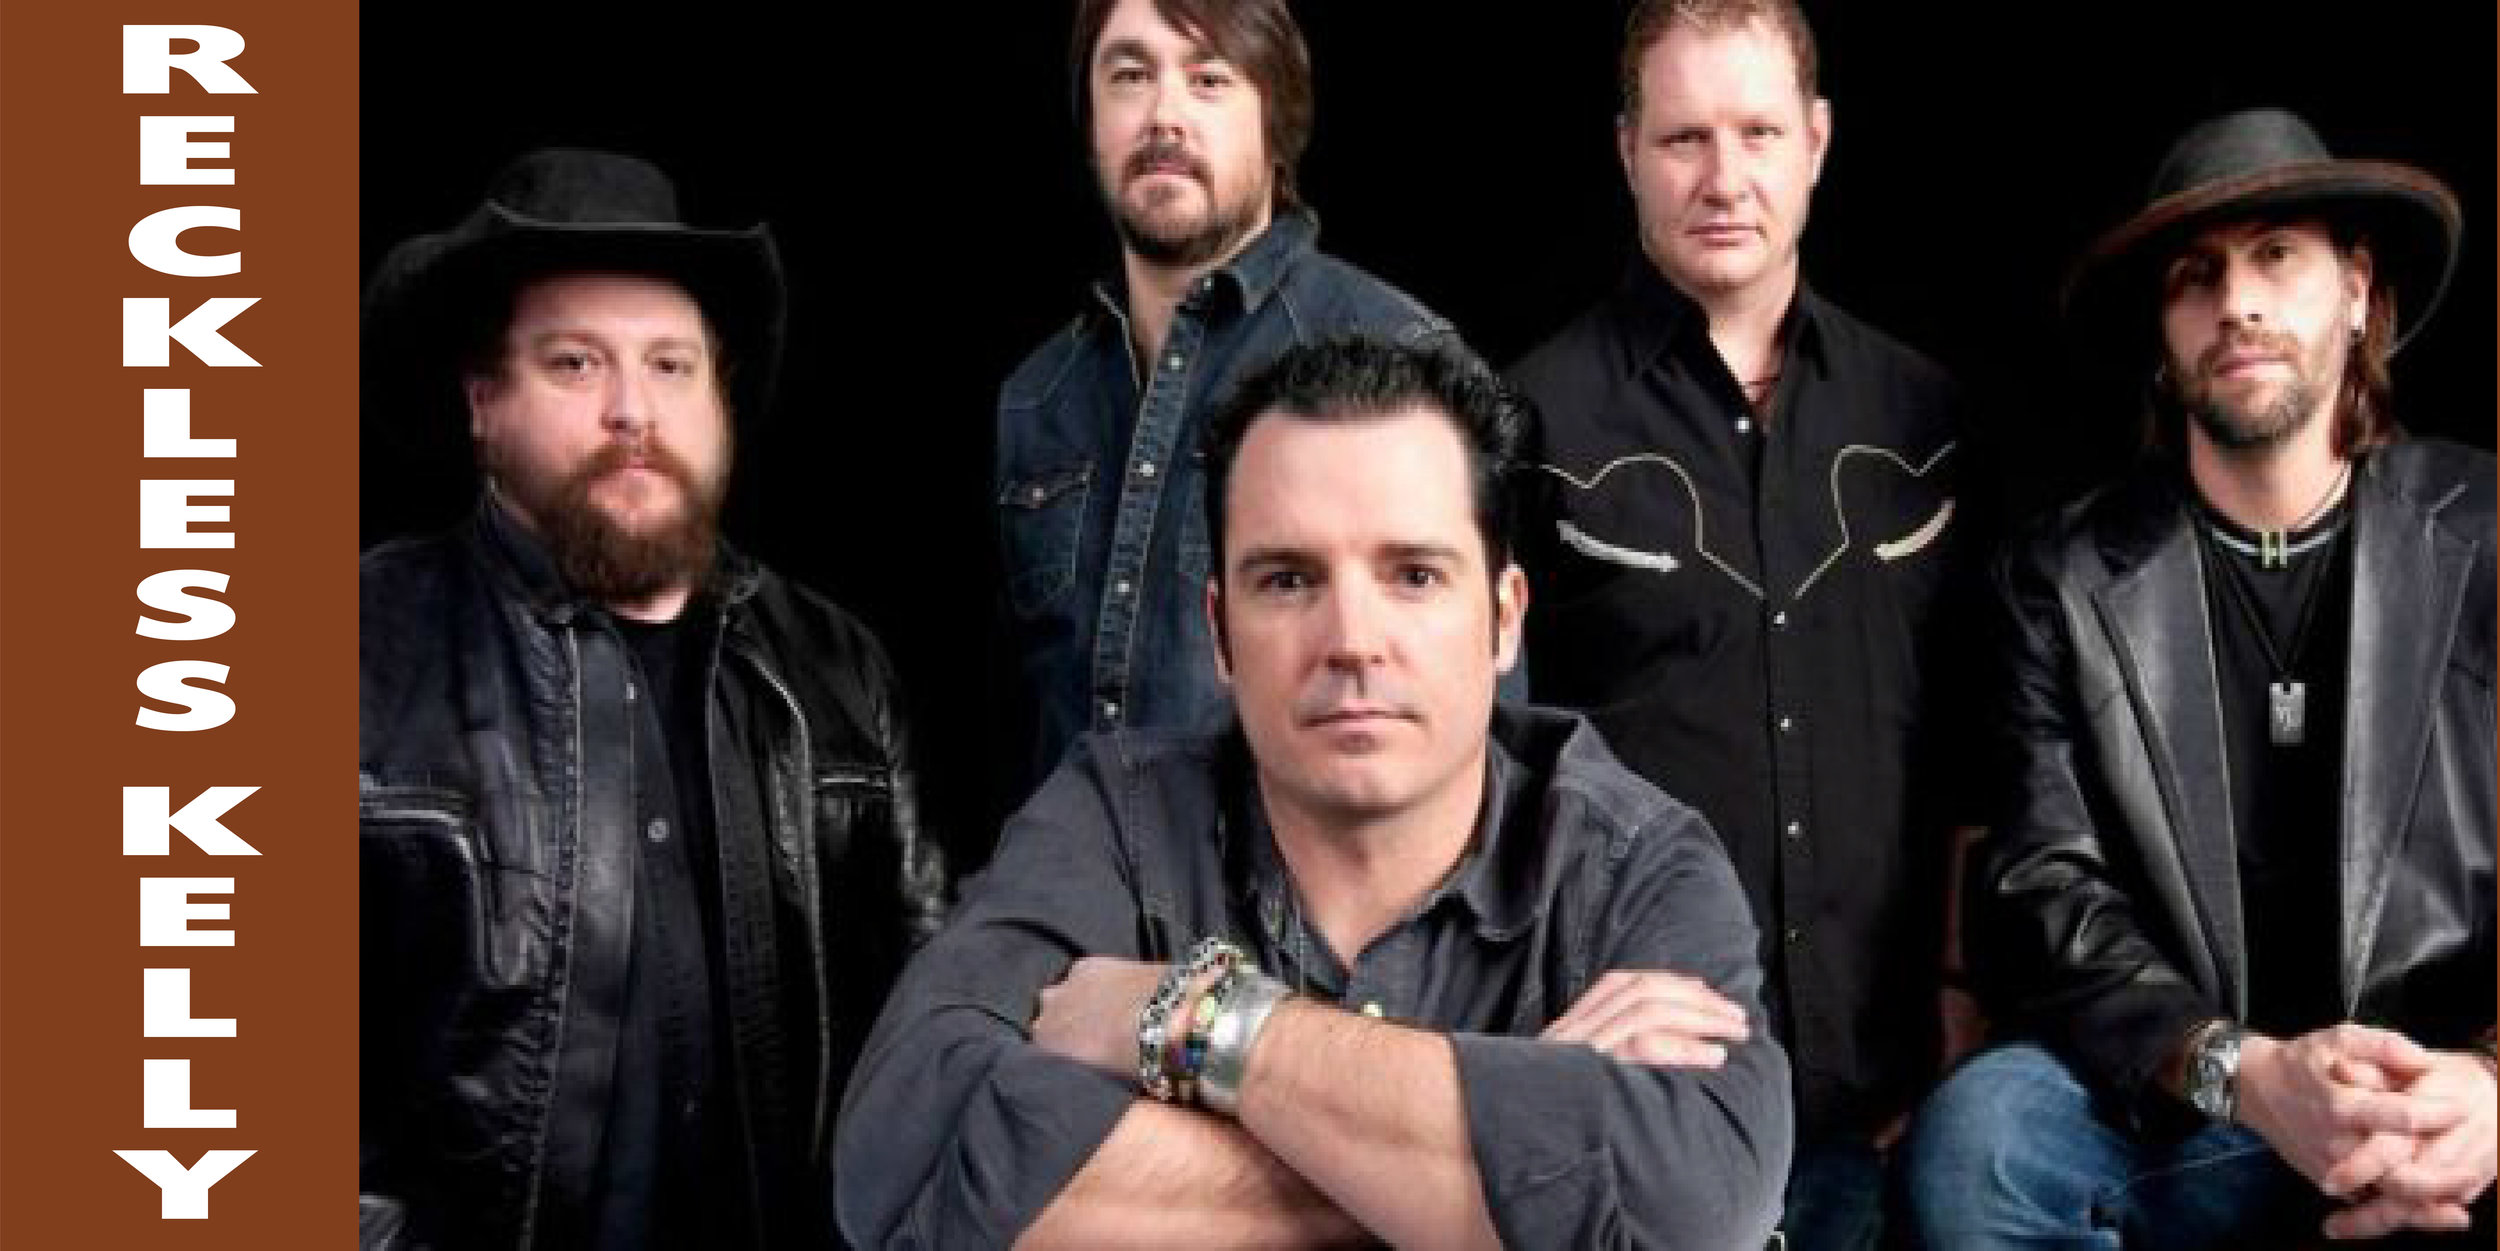 Reckless Kelly set to light up the Warehouse stage Friday, May 24th! Tickets go on sale 3/21 at 12:00… Get em while they last!